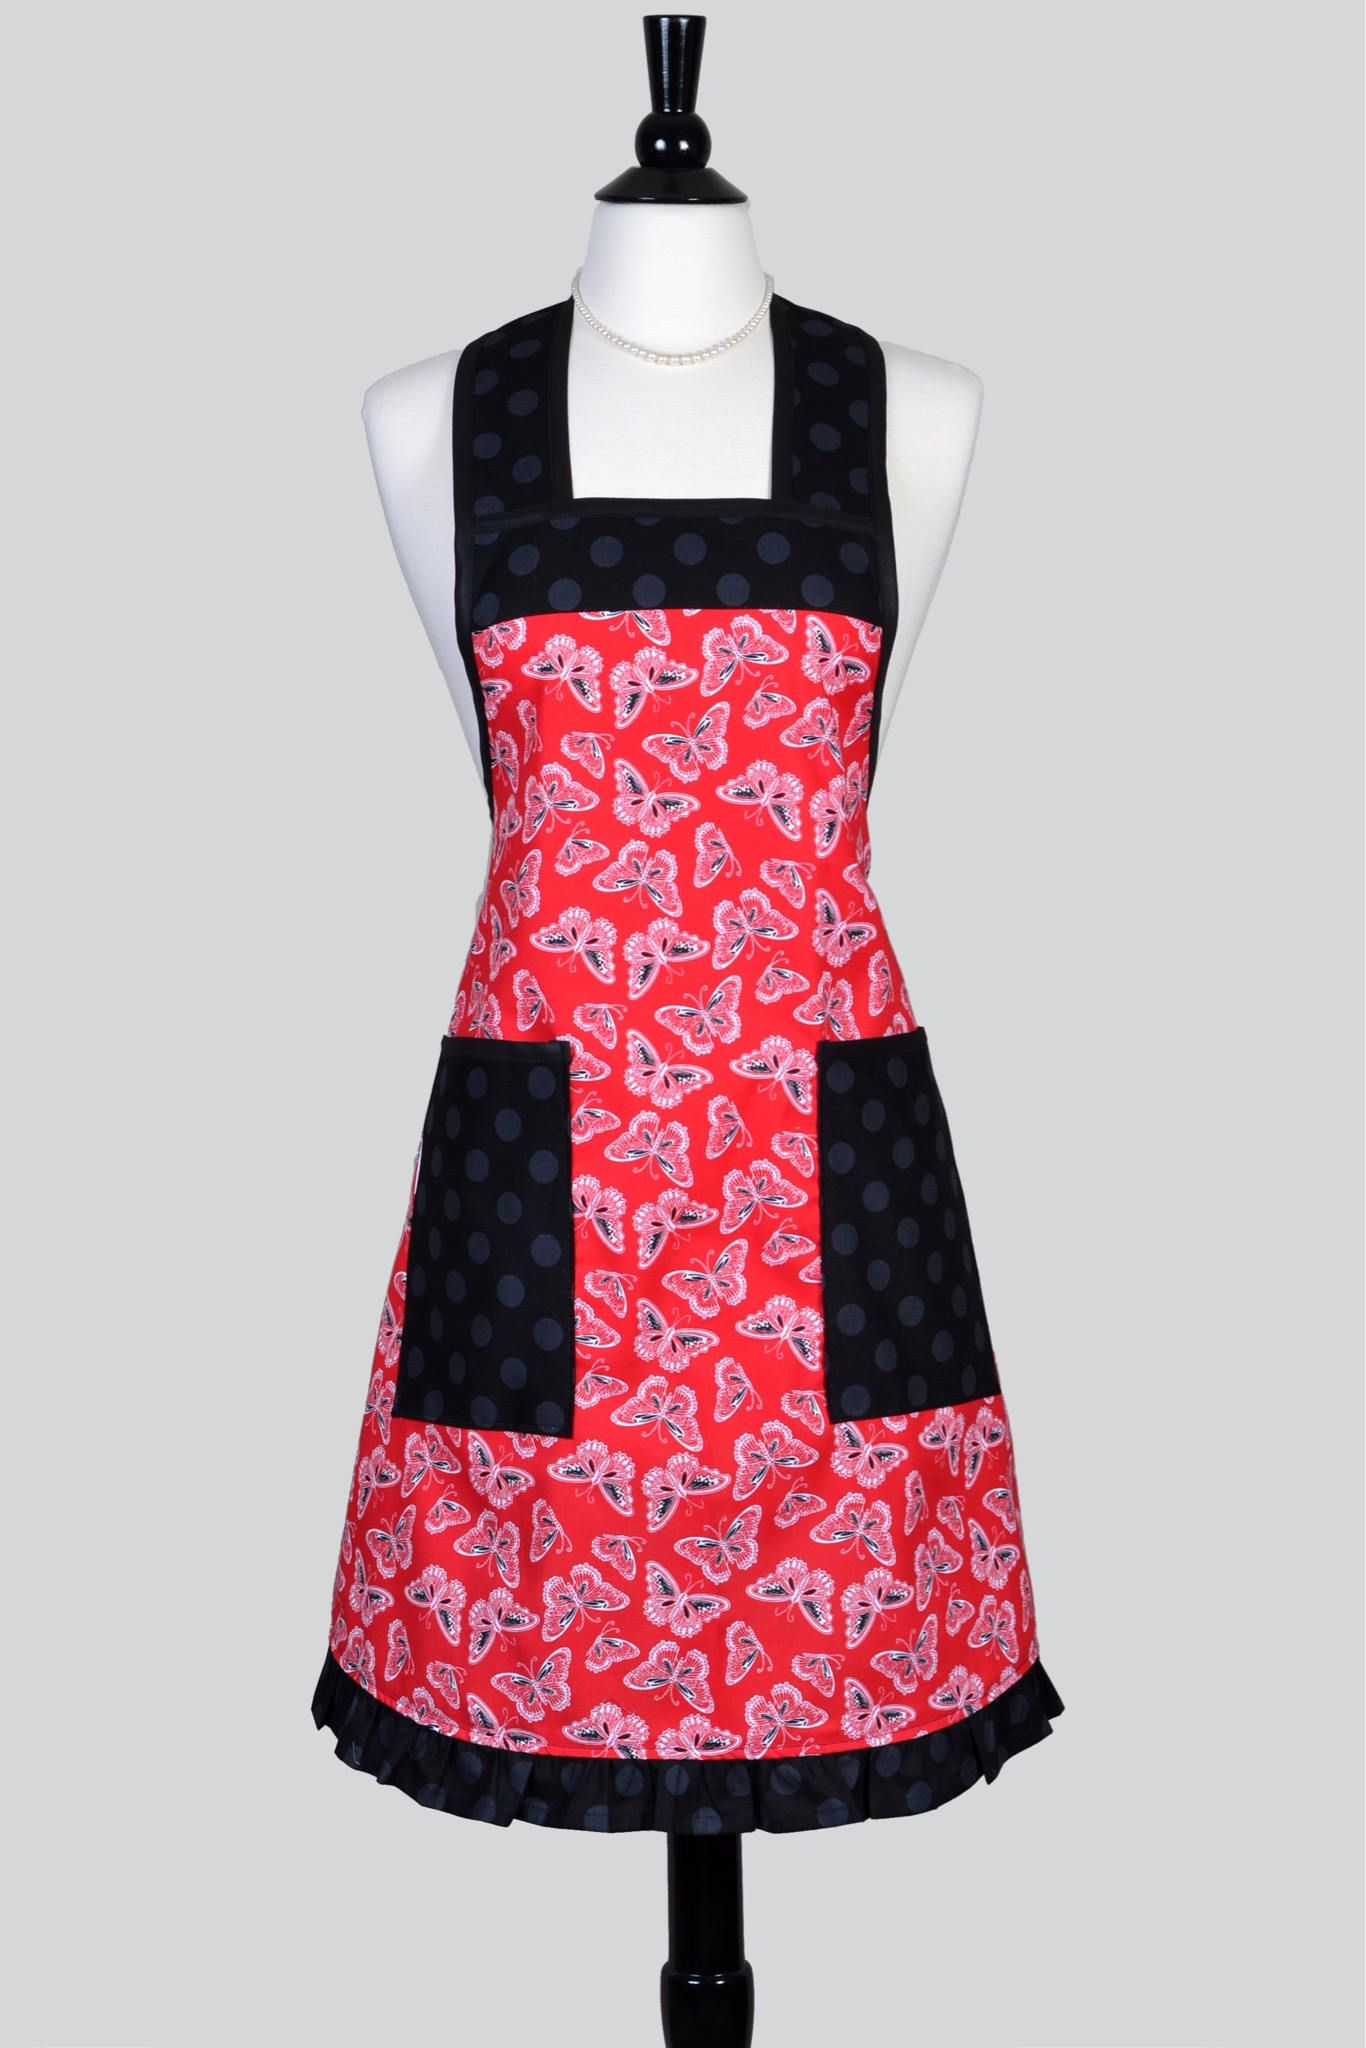 Women S Ruffled Kitchen Chef A Black Erflies Large Pockets Cute And Feminine Perfect For Cooking